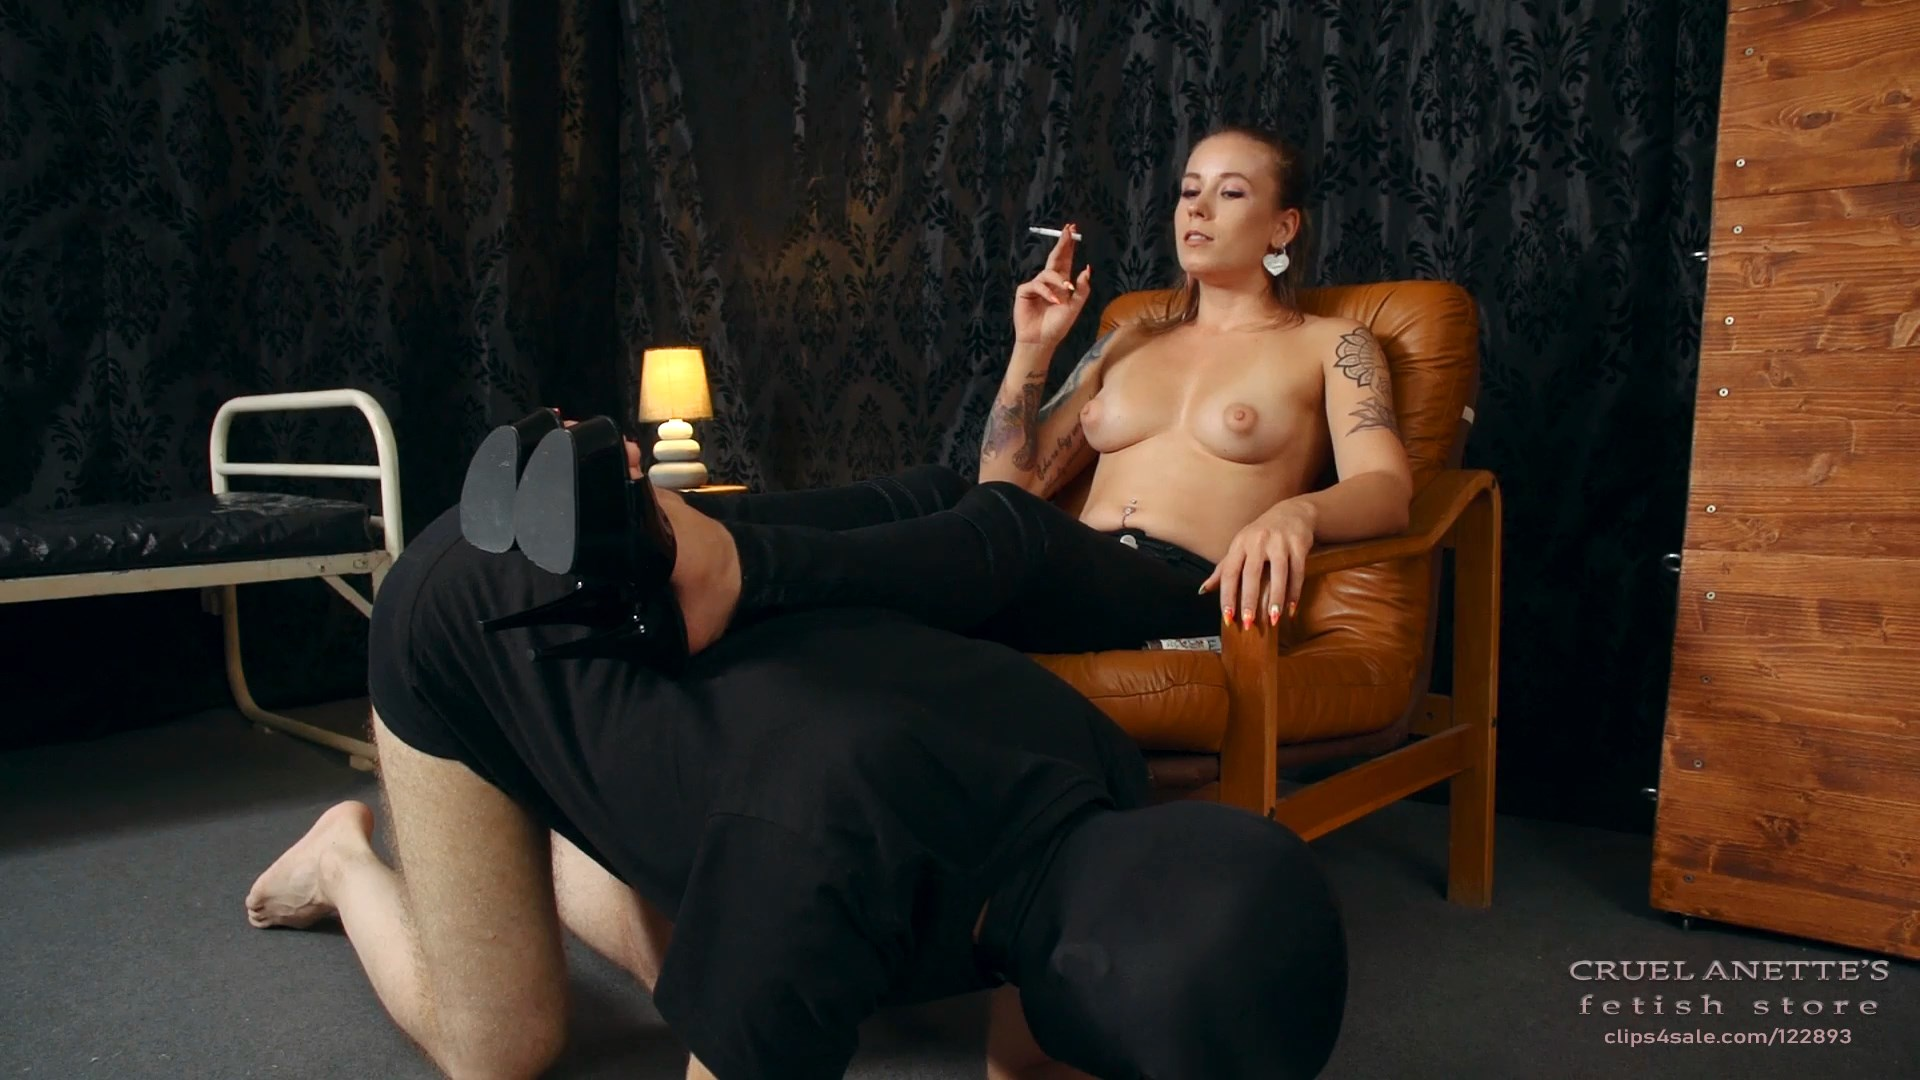 Smoker in a comfortable armchair - CRUEL ANETTES FETISH STORE - FULL HD/1080p/MP4